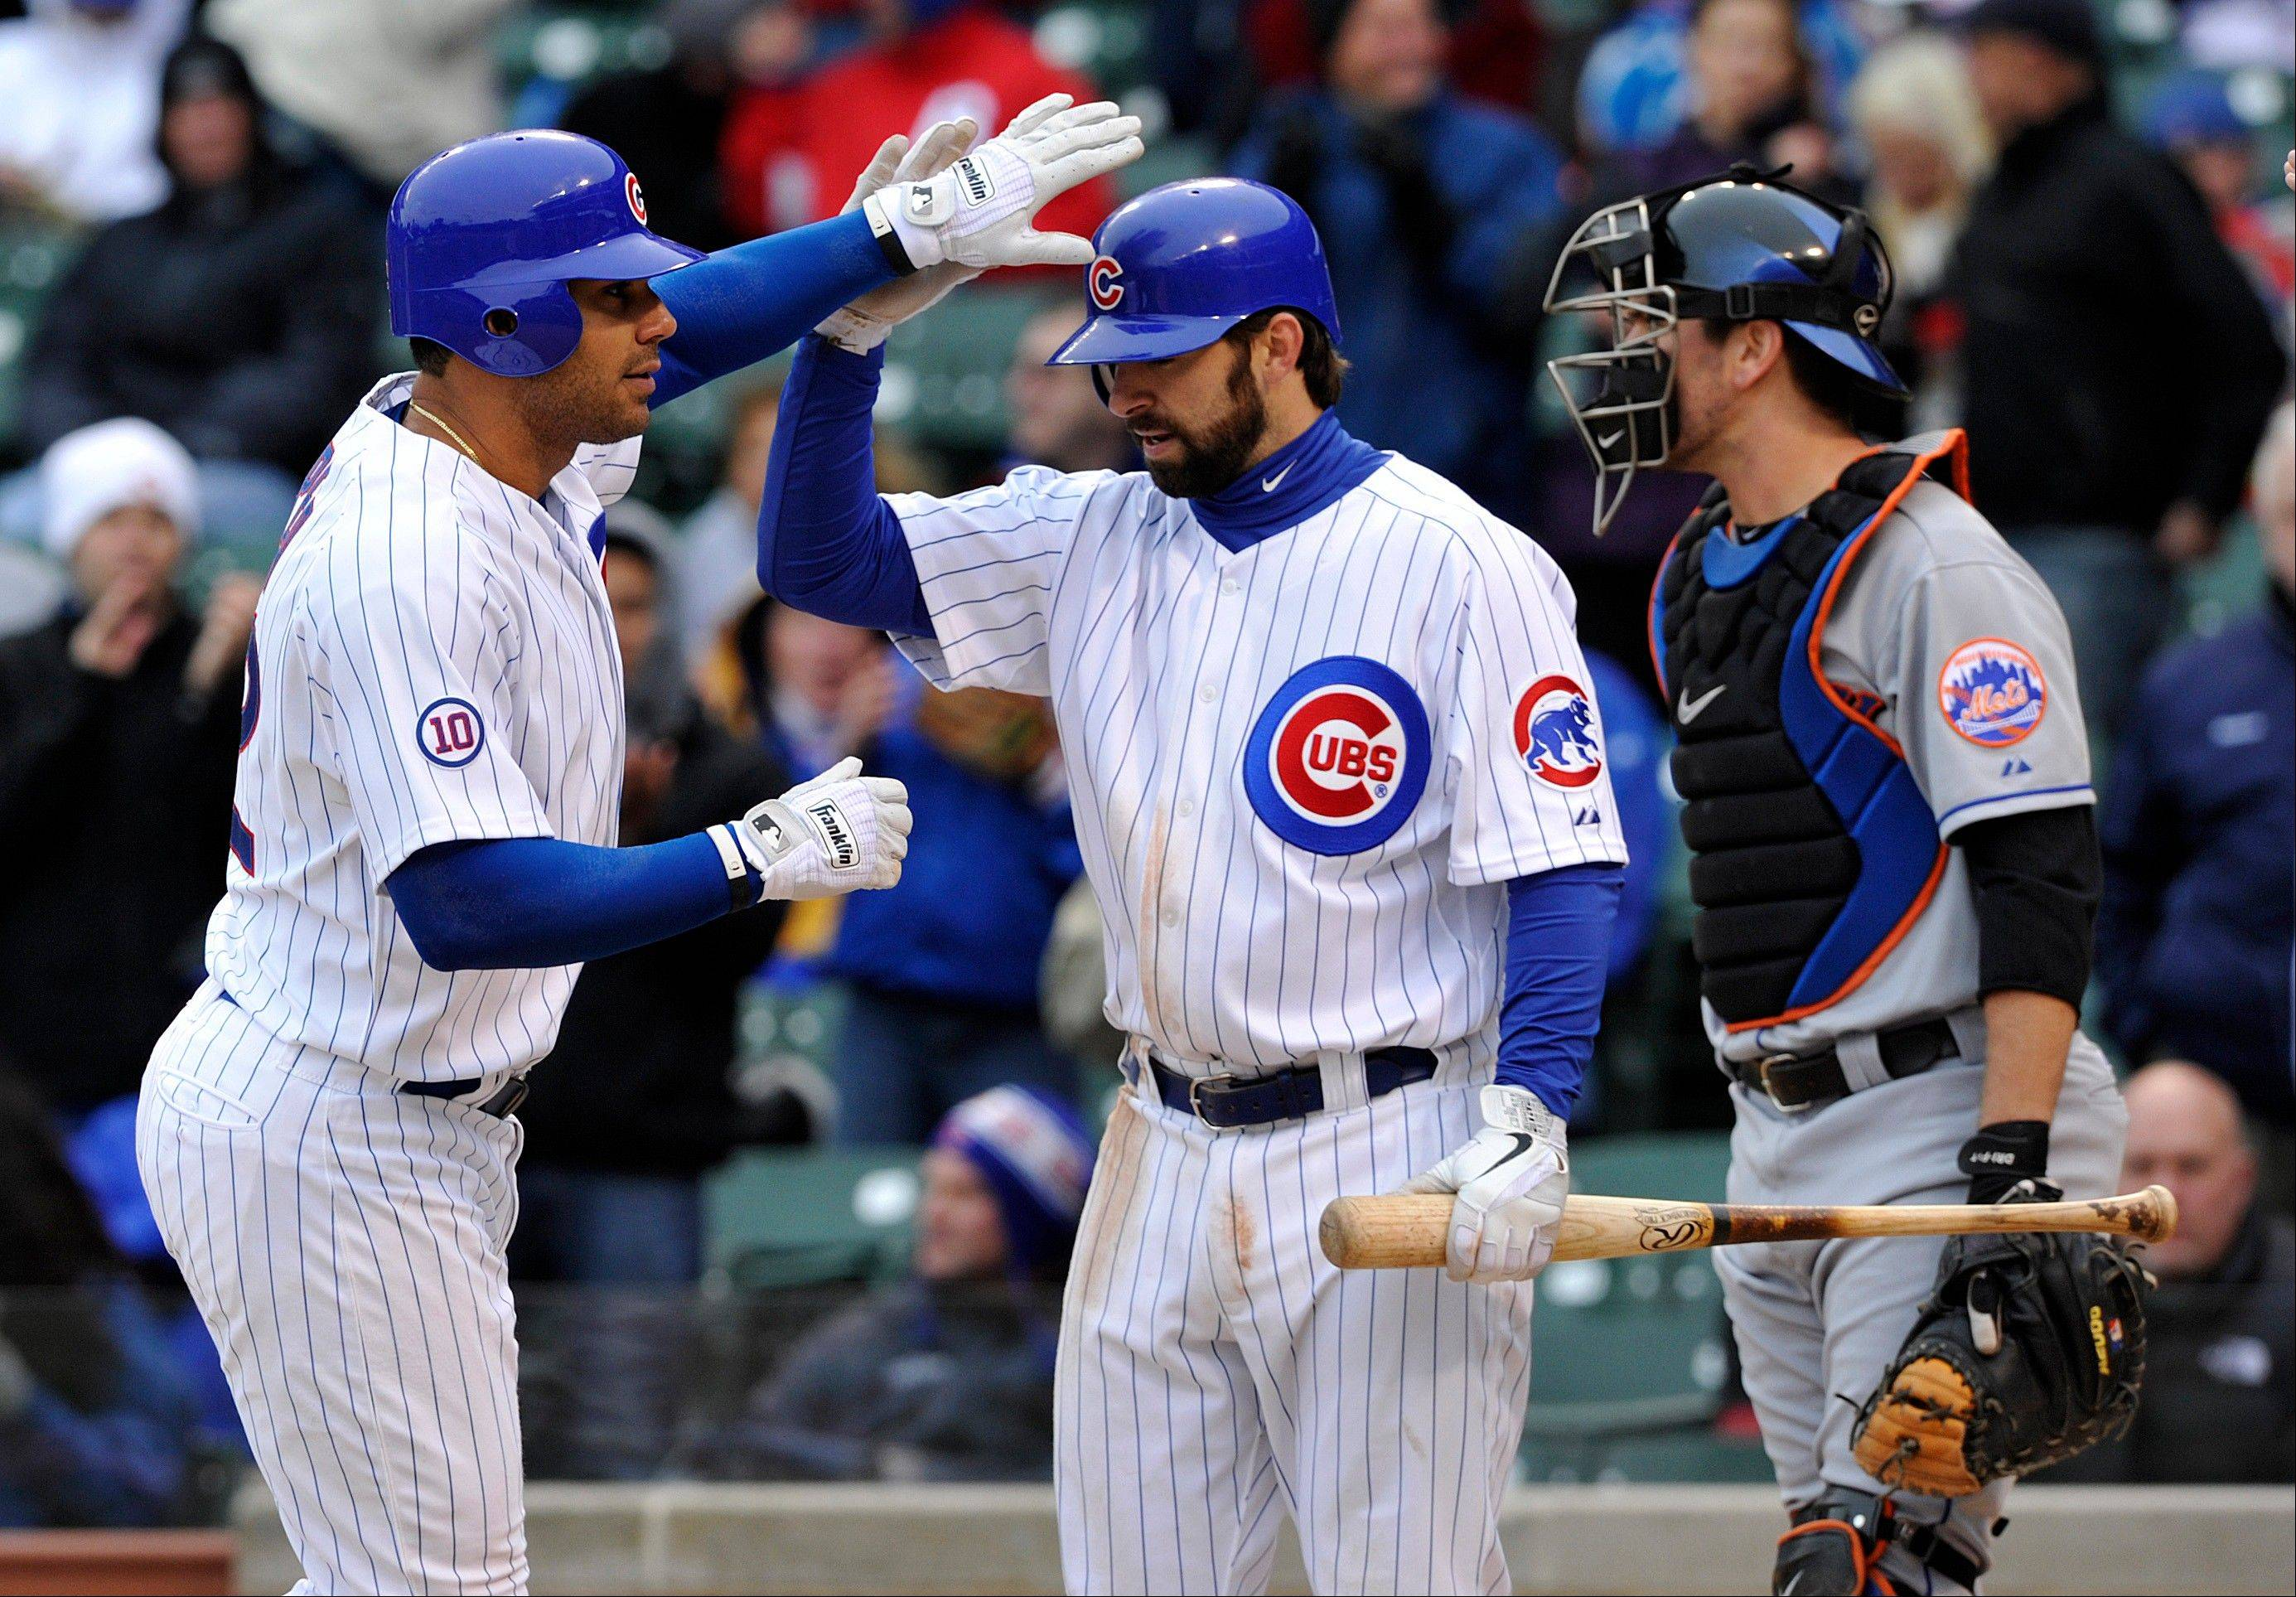 The Cubs' Carlos Pena, left, gets high-fives from Blake DeWitt after Pena hit a 2-run homer in the fourth inning Thursday.